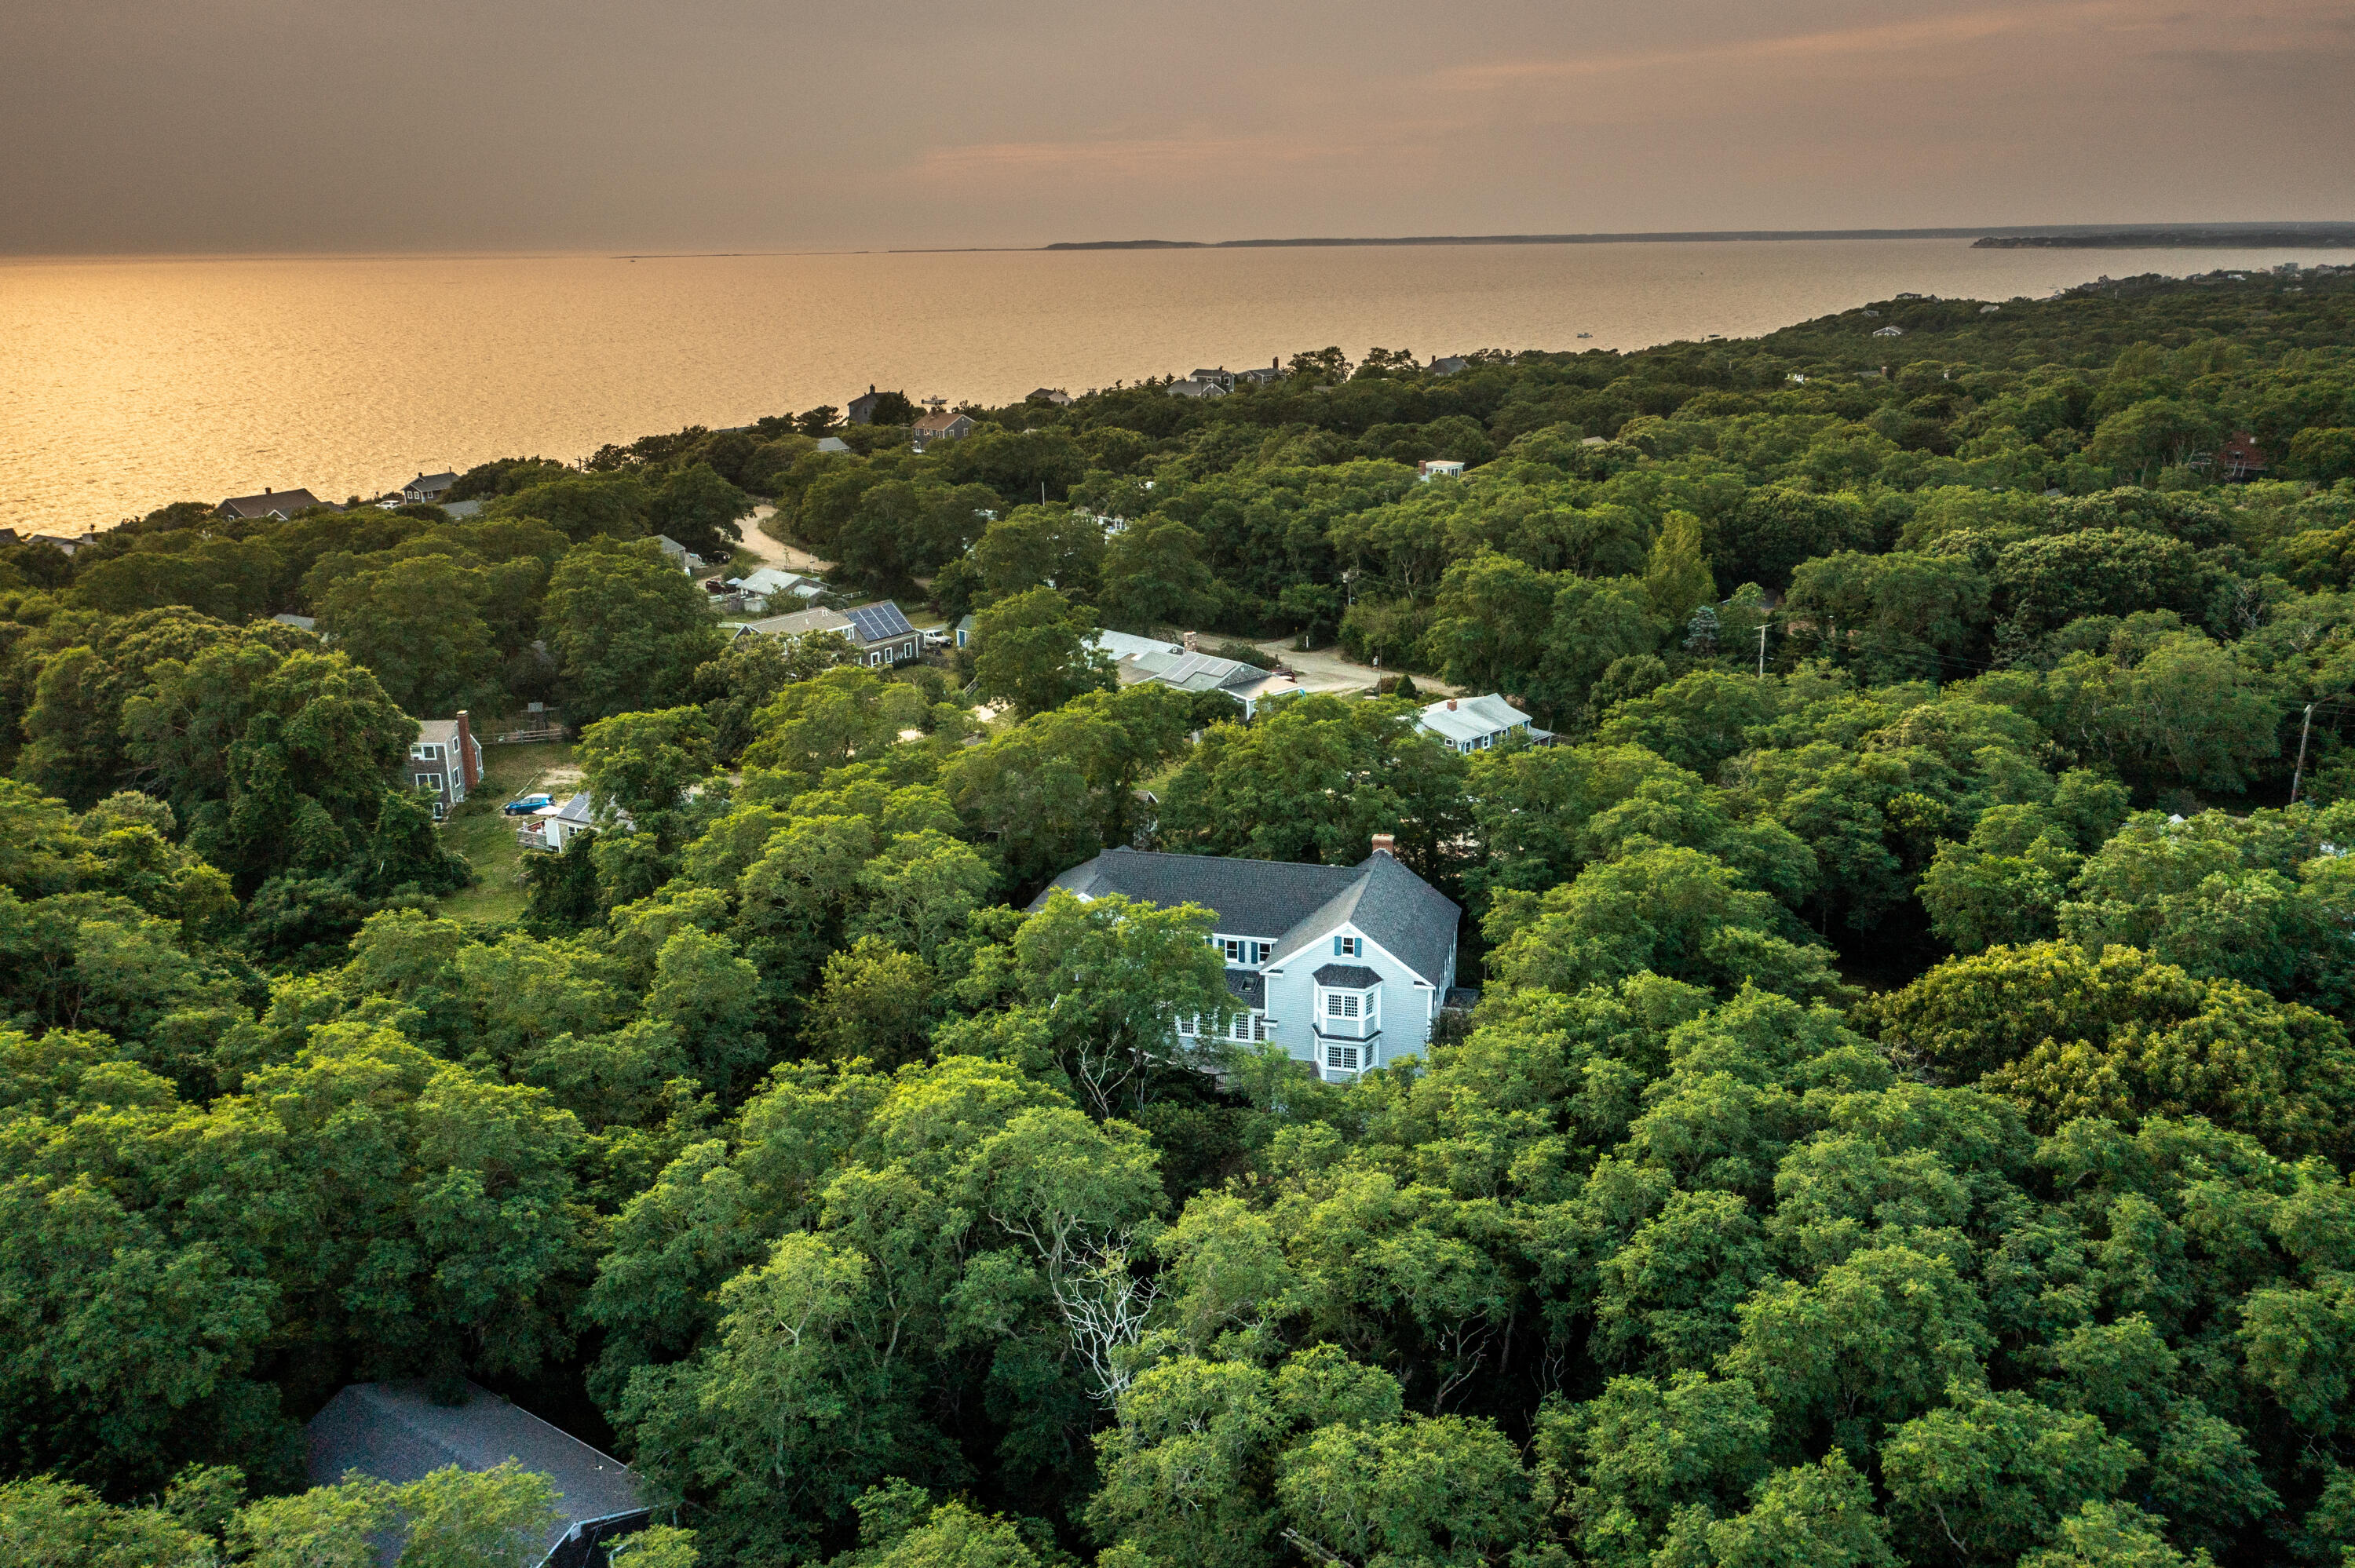 105 Townsend Rd. Extension, Eastham MA, 02642 details